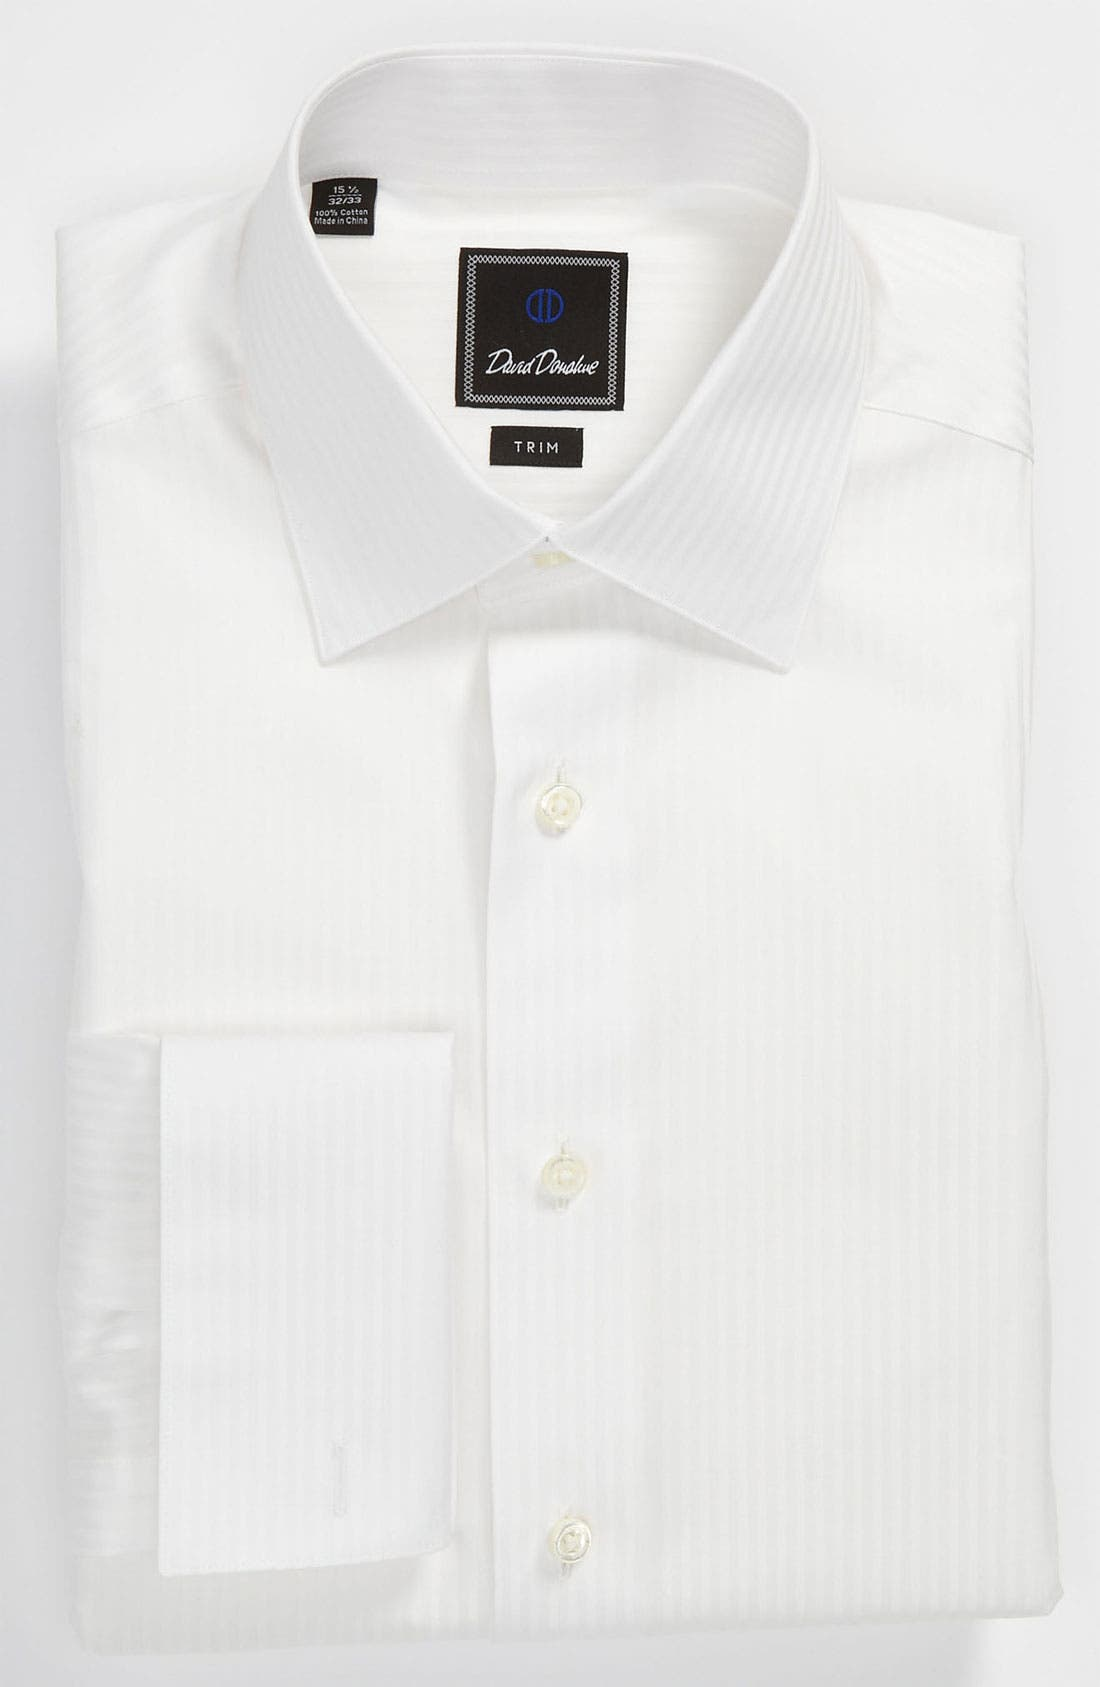 Alternate Image 1 Selected - David Donahue Trim Fit Tuxedo Shirt